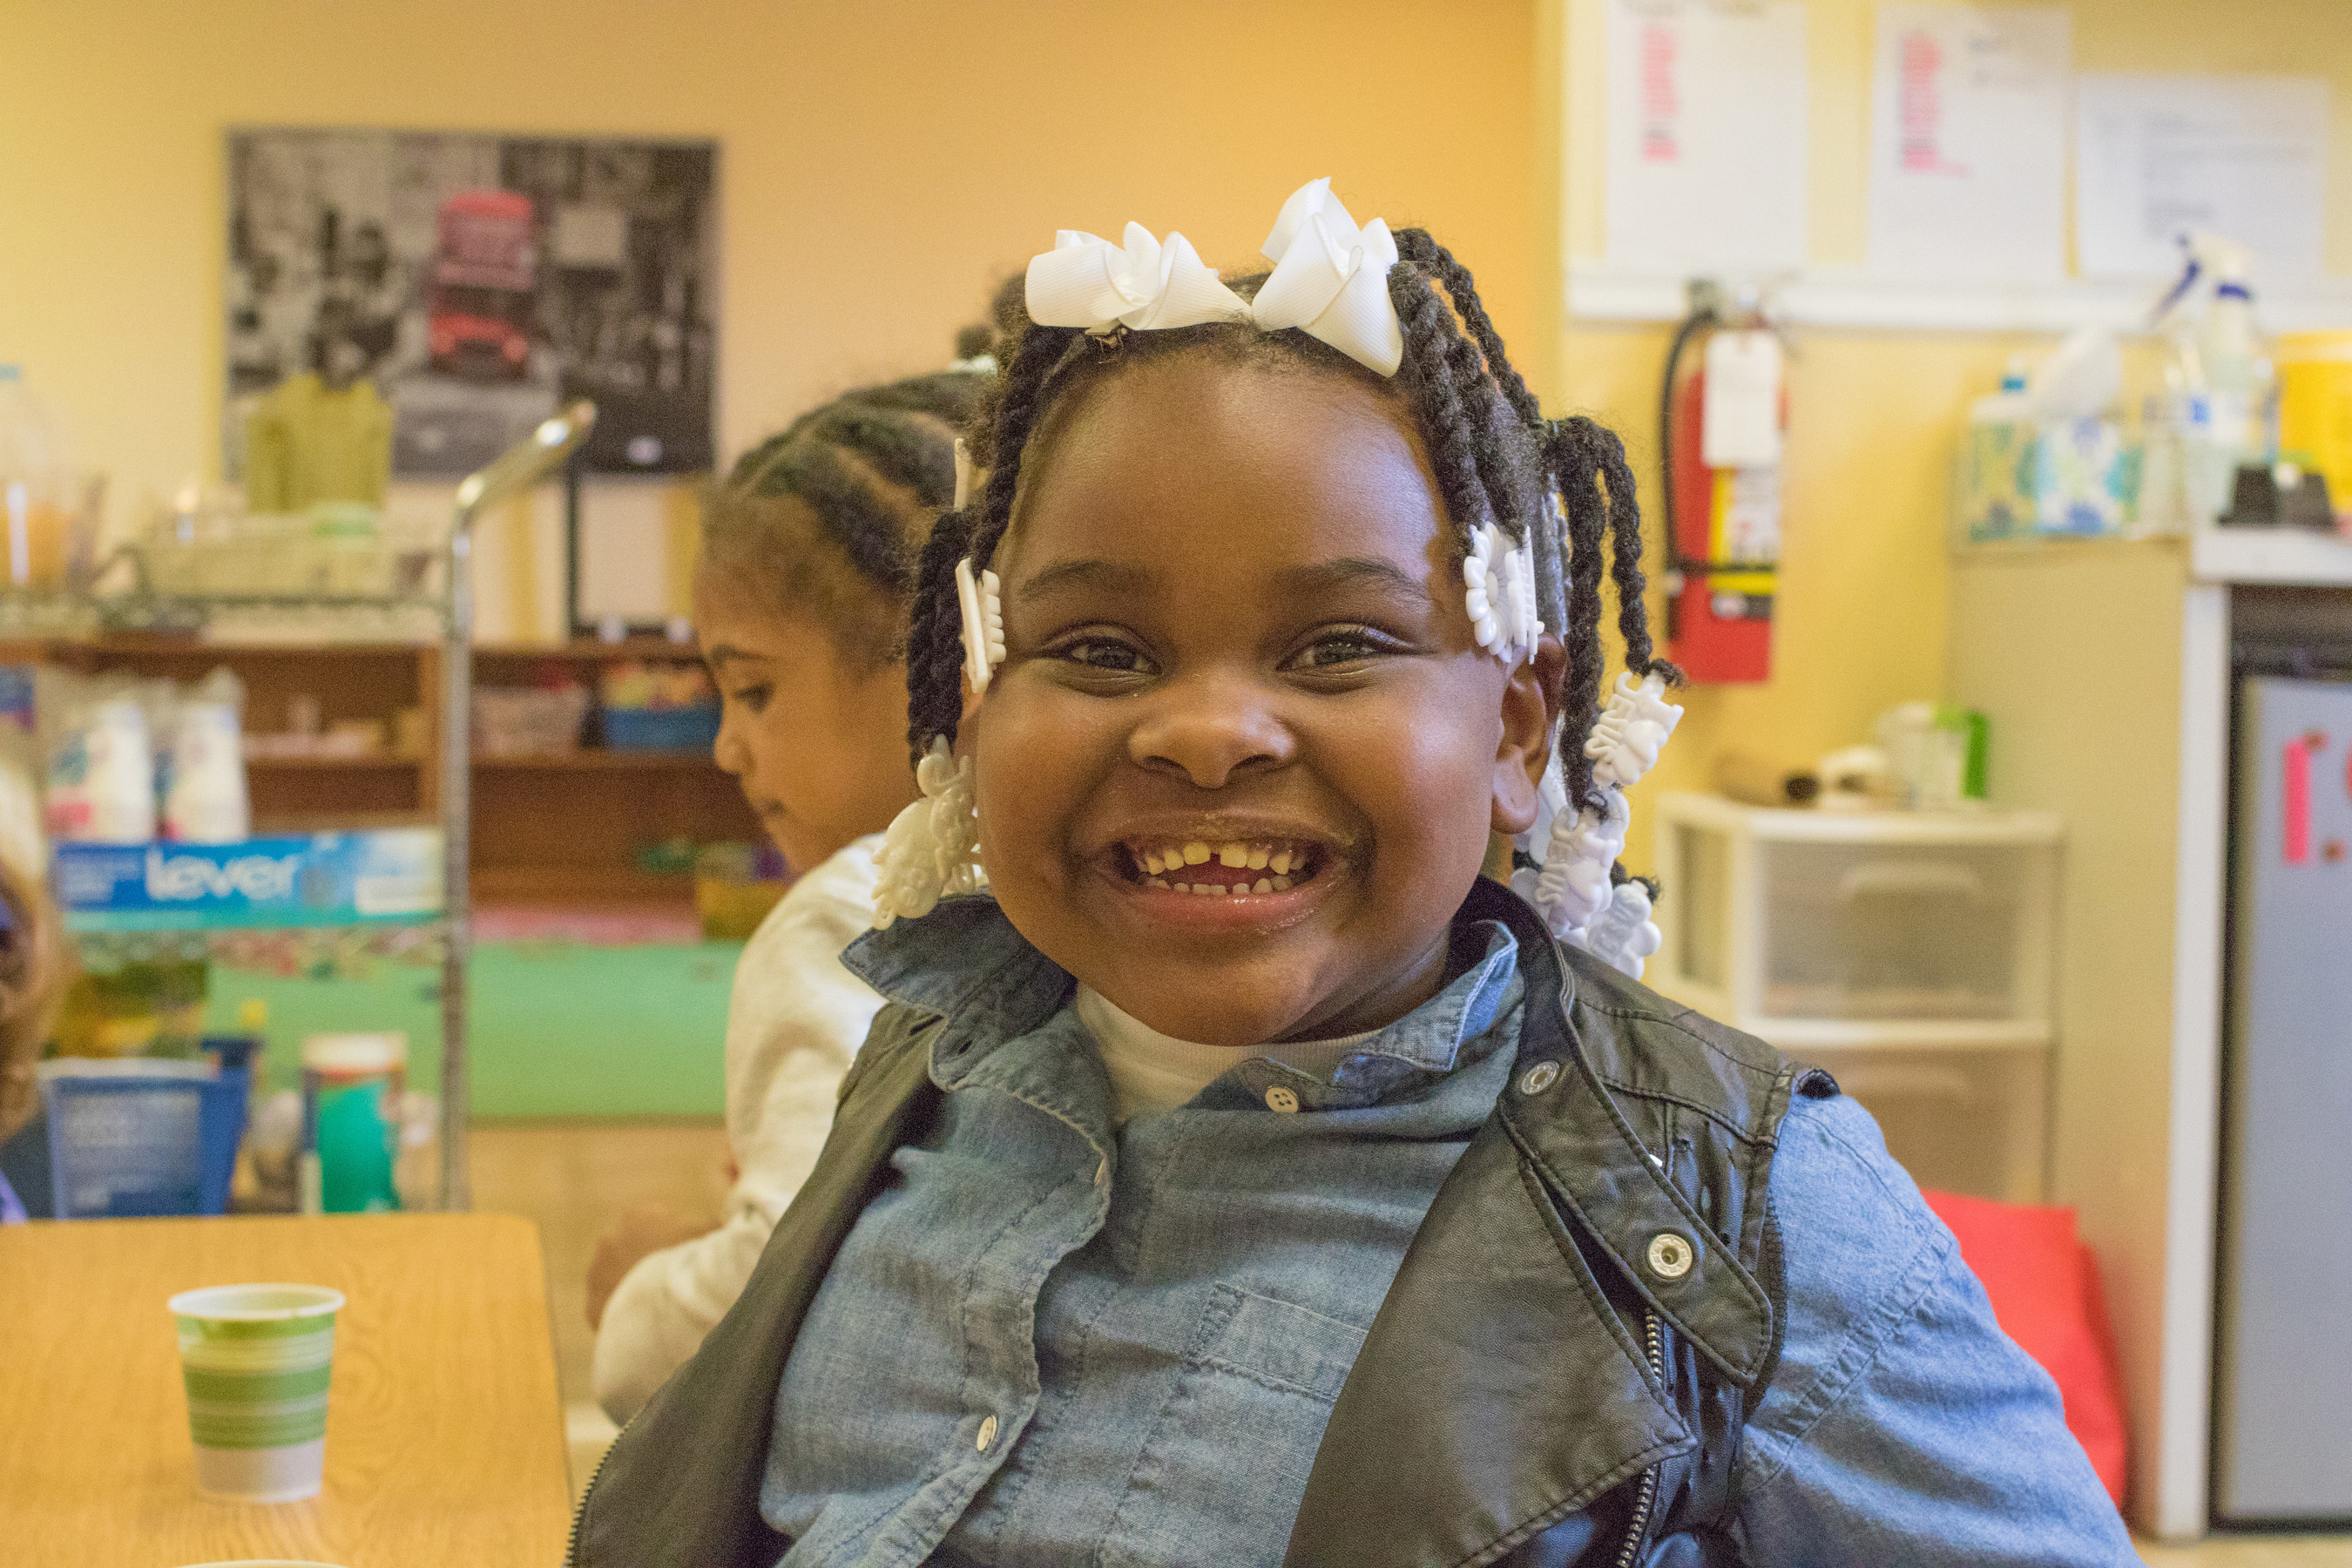 """Adonai, 4, says she loves chocolate, but she also loves apples, carrots, and strawberries. """"Pink is my favorite."""" Her grandma, who she calls """"grammy,"""" came early to pick her up, but let her stay a little bit longer for the smoothies. """"It's good!"""" she tells grammy, who is sampling the smoothies. In collaboration with Alpha Montessori School at the YWCA in Flint, Mich., Save the Children is piloting a smoothie program to get children to eat healthy, nutrient-rich foods to mitigate the impact of lead exposure. Photo by Stuart Sia / Save the Children."""